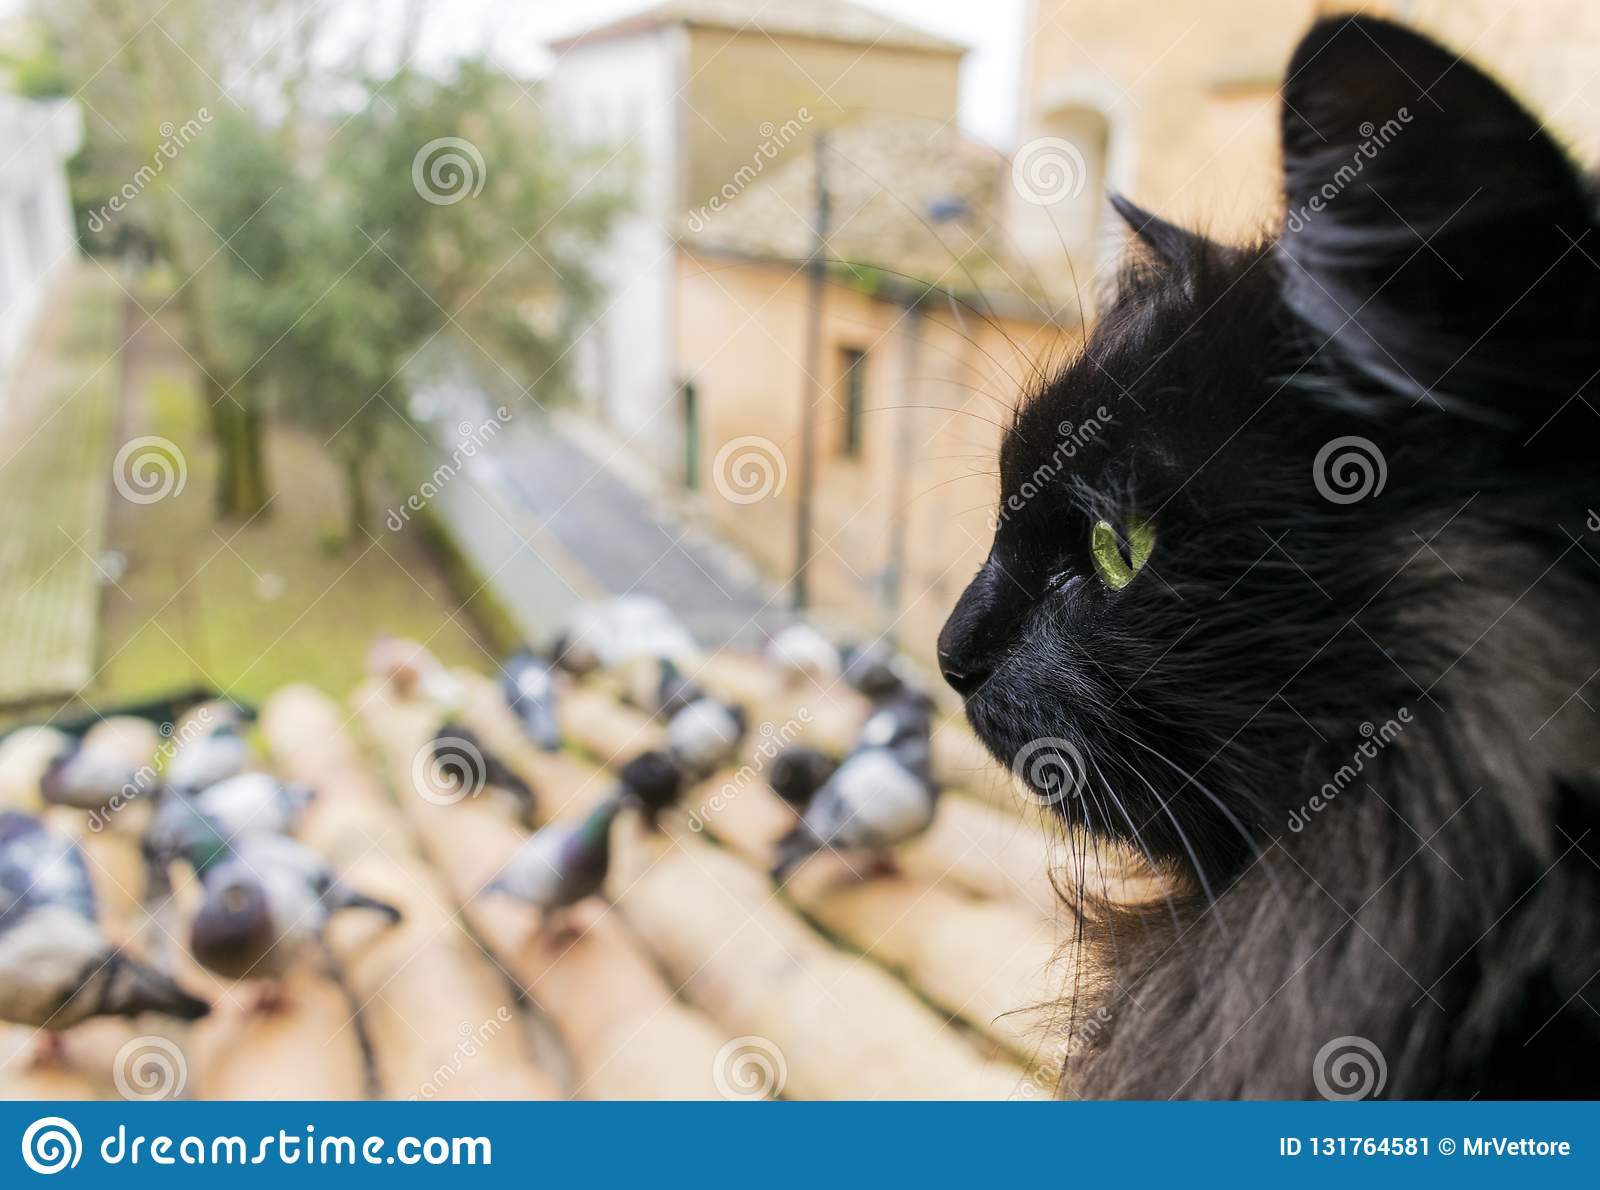 A black cat with green eyes looks at the pigeons. Closeup. Сat in focus. Stock image.